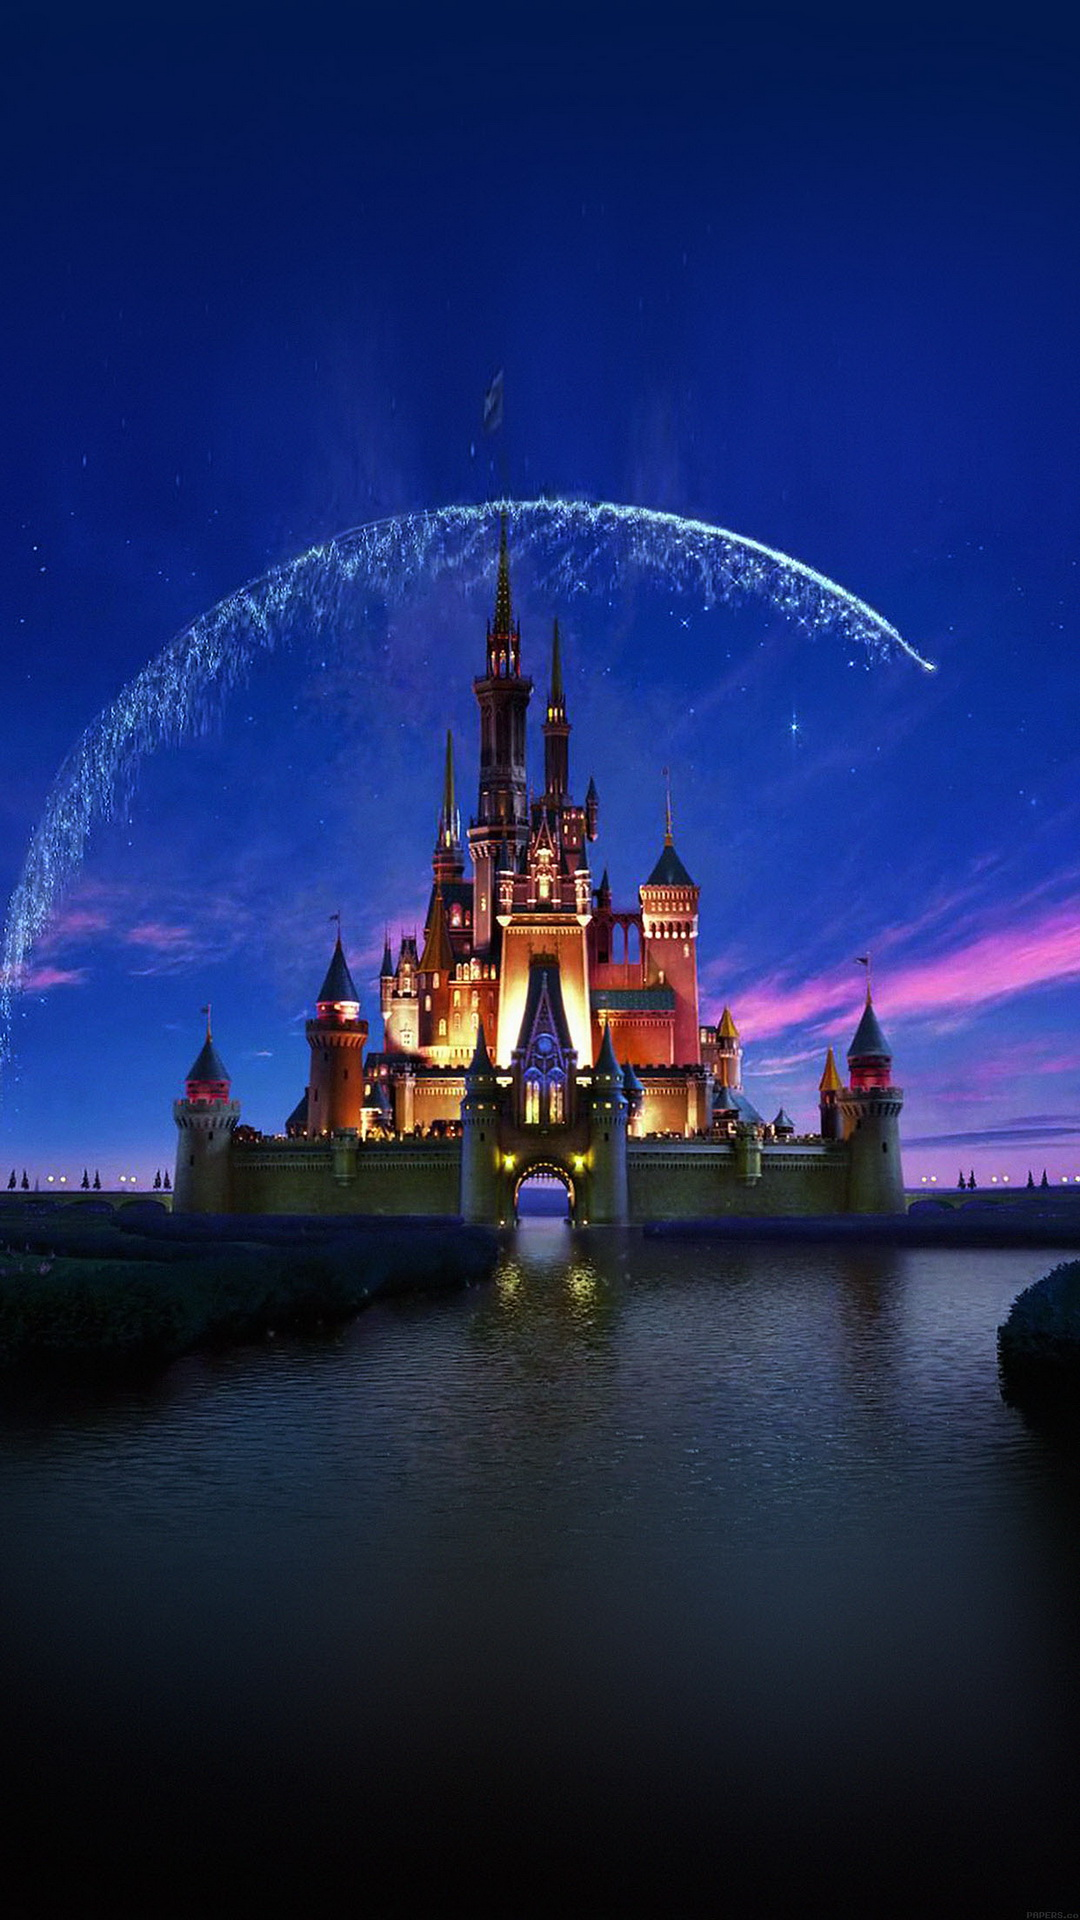 Disney Castle   Top 10 HTC One M9 wallpapers download 1080x1920